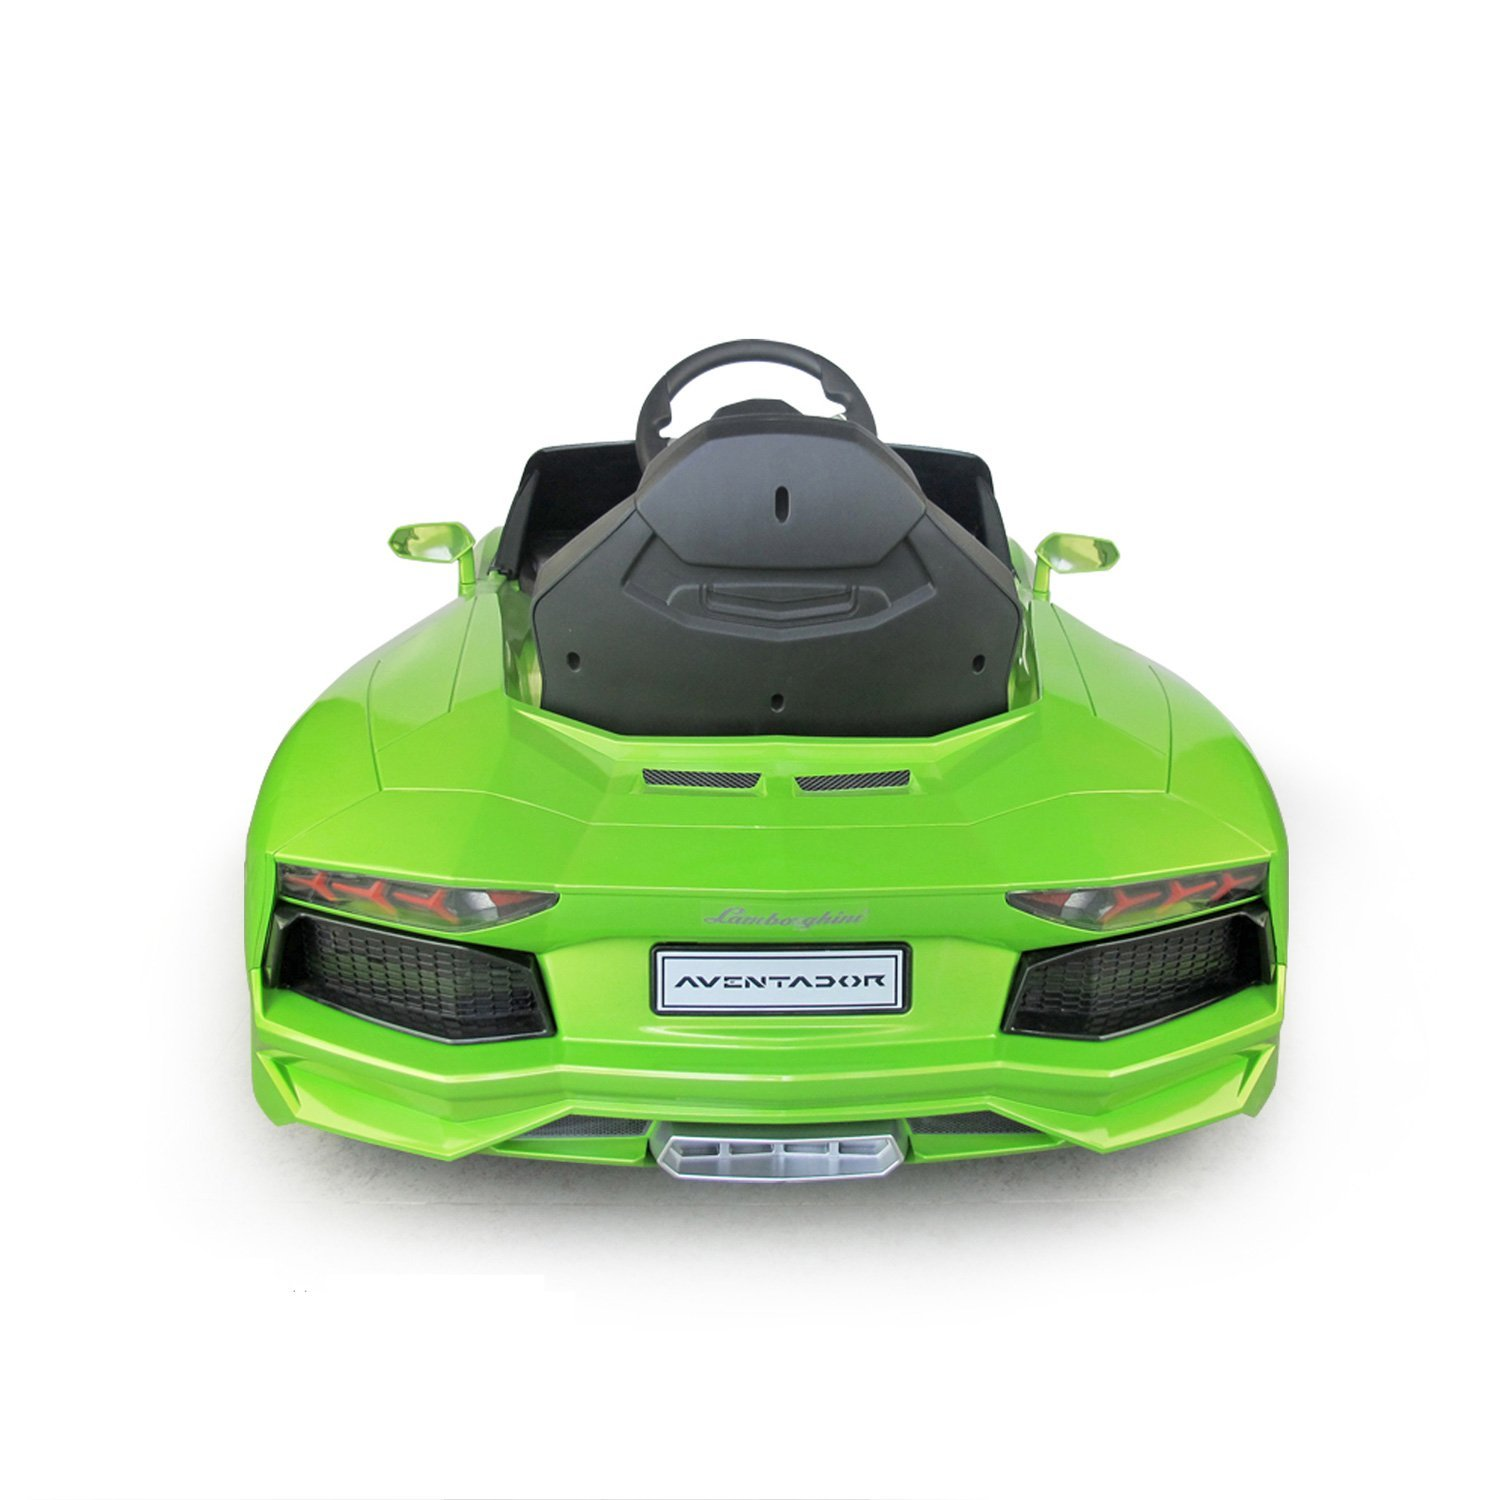 First Cars for Kids Power Wheels Lamborghini Aventador Ride